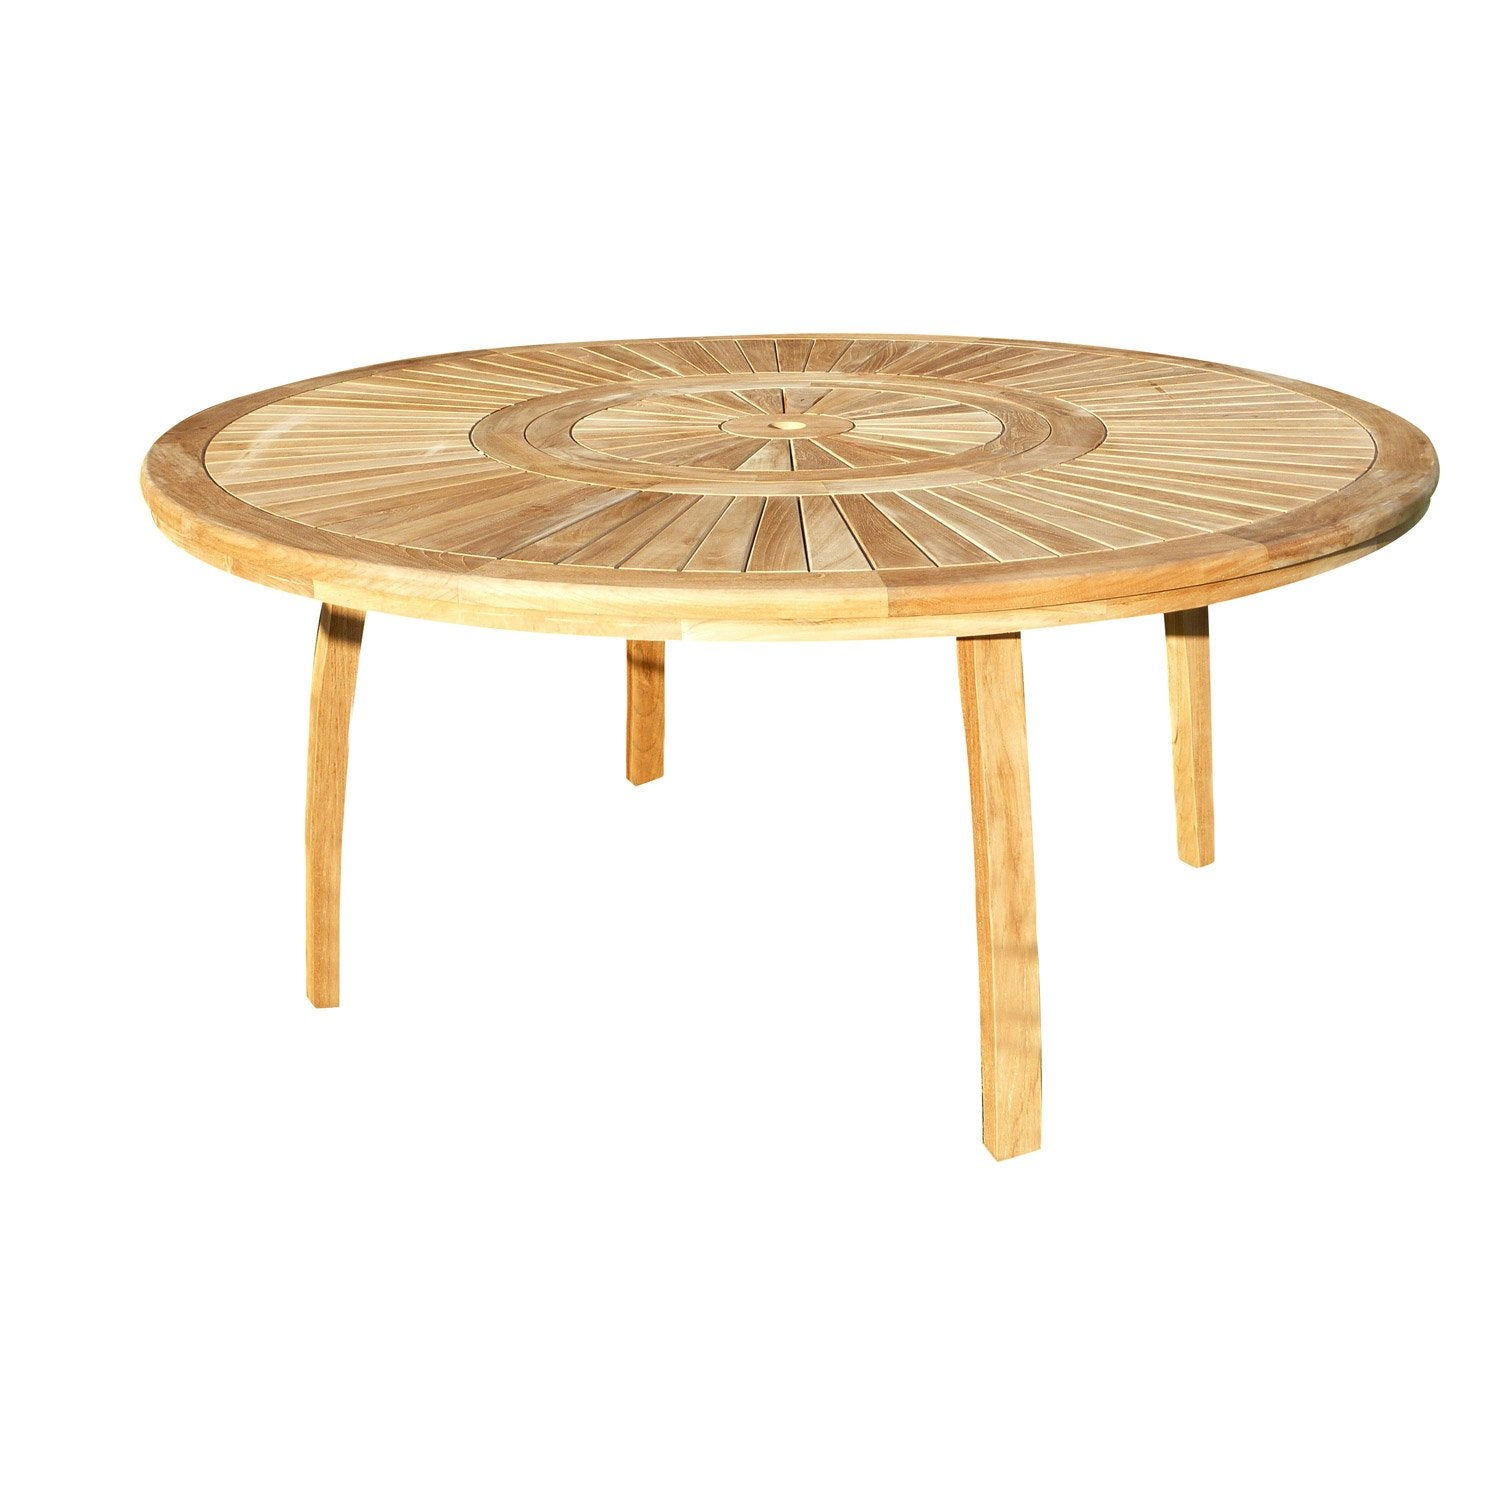 Table de jardin orion ronde naturel 8 personnes leroy merlin for Table ronde extensible 12 personnes